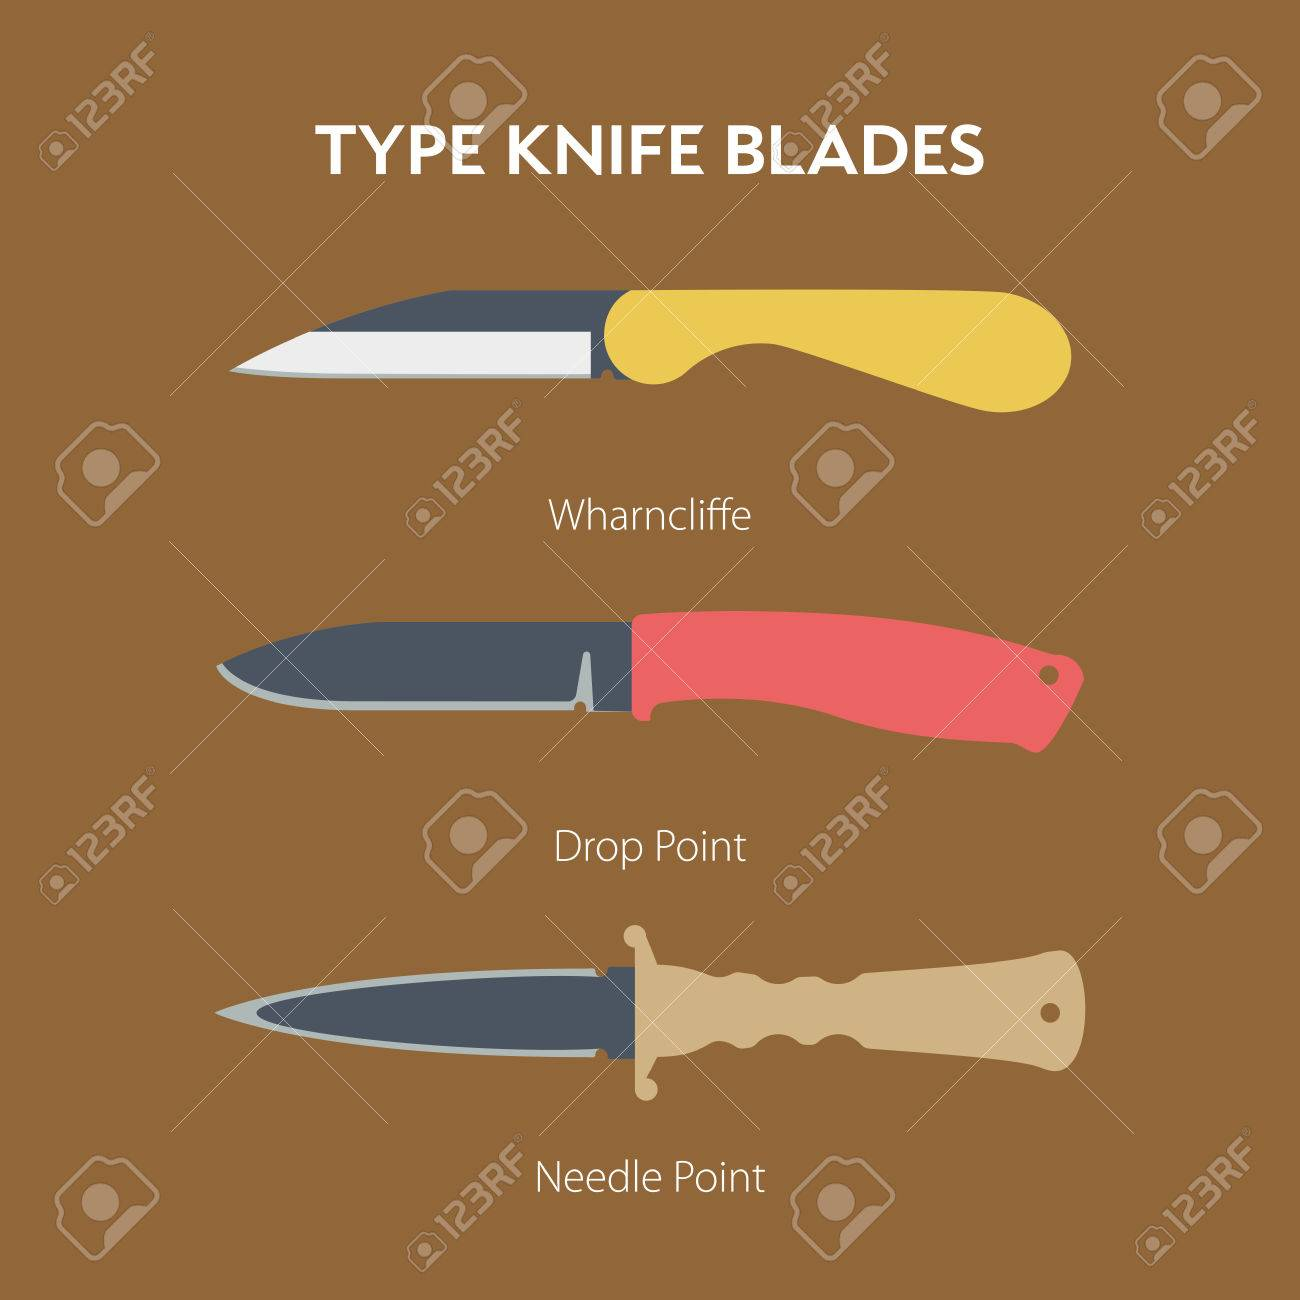 A simple illustration of hand folding knife for everyday carrying